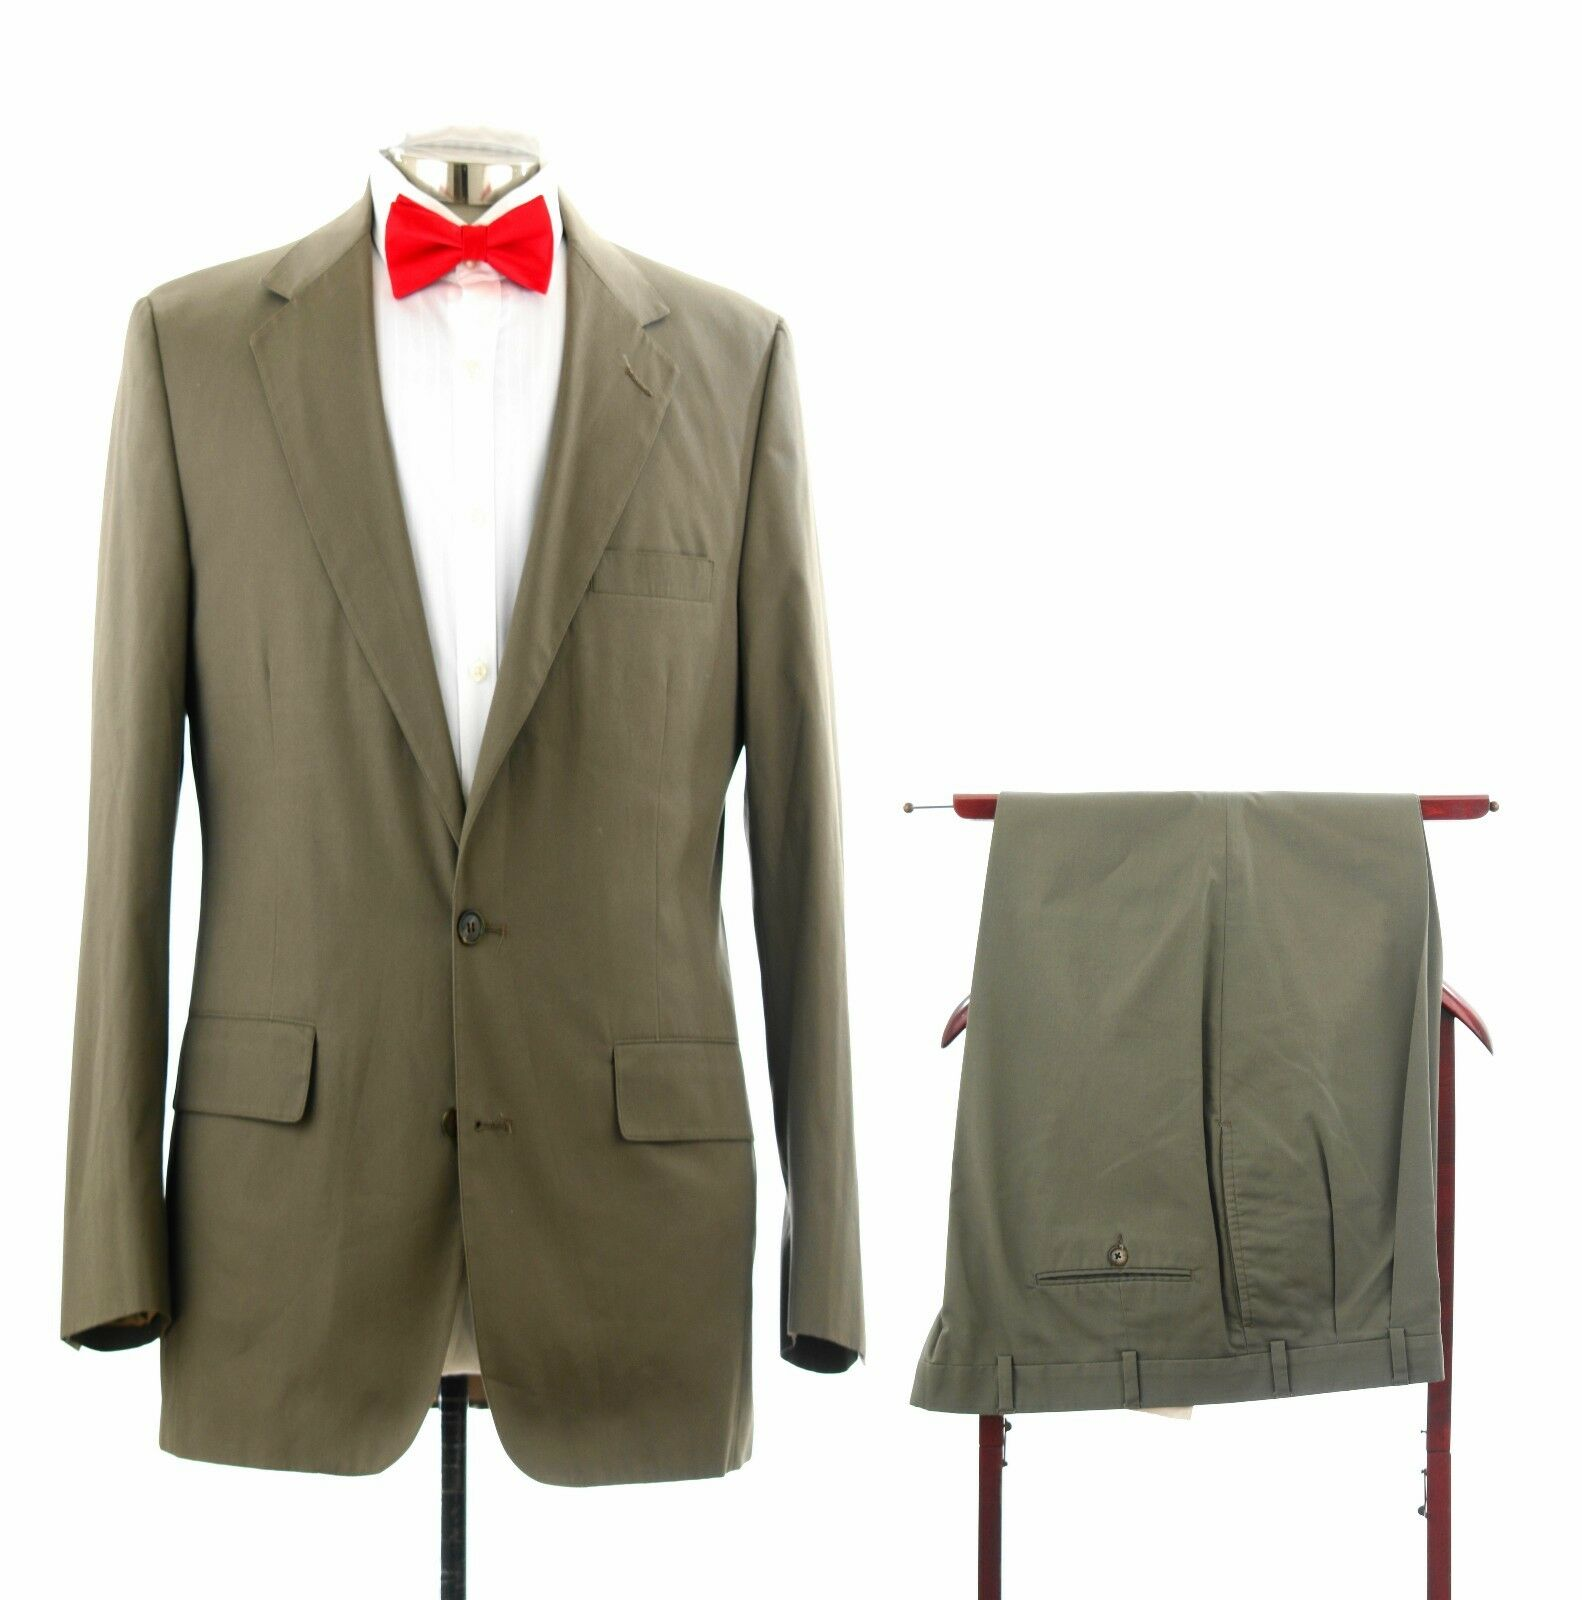 Brooks Brothers Olive Grün Suit Made in Usa From Imported Fabric Sz 42 R